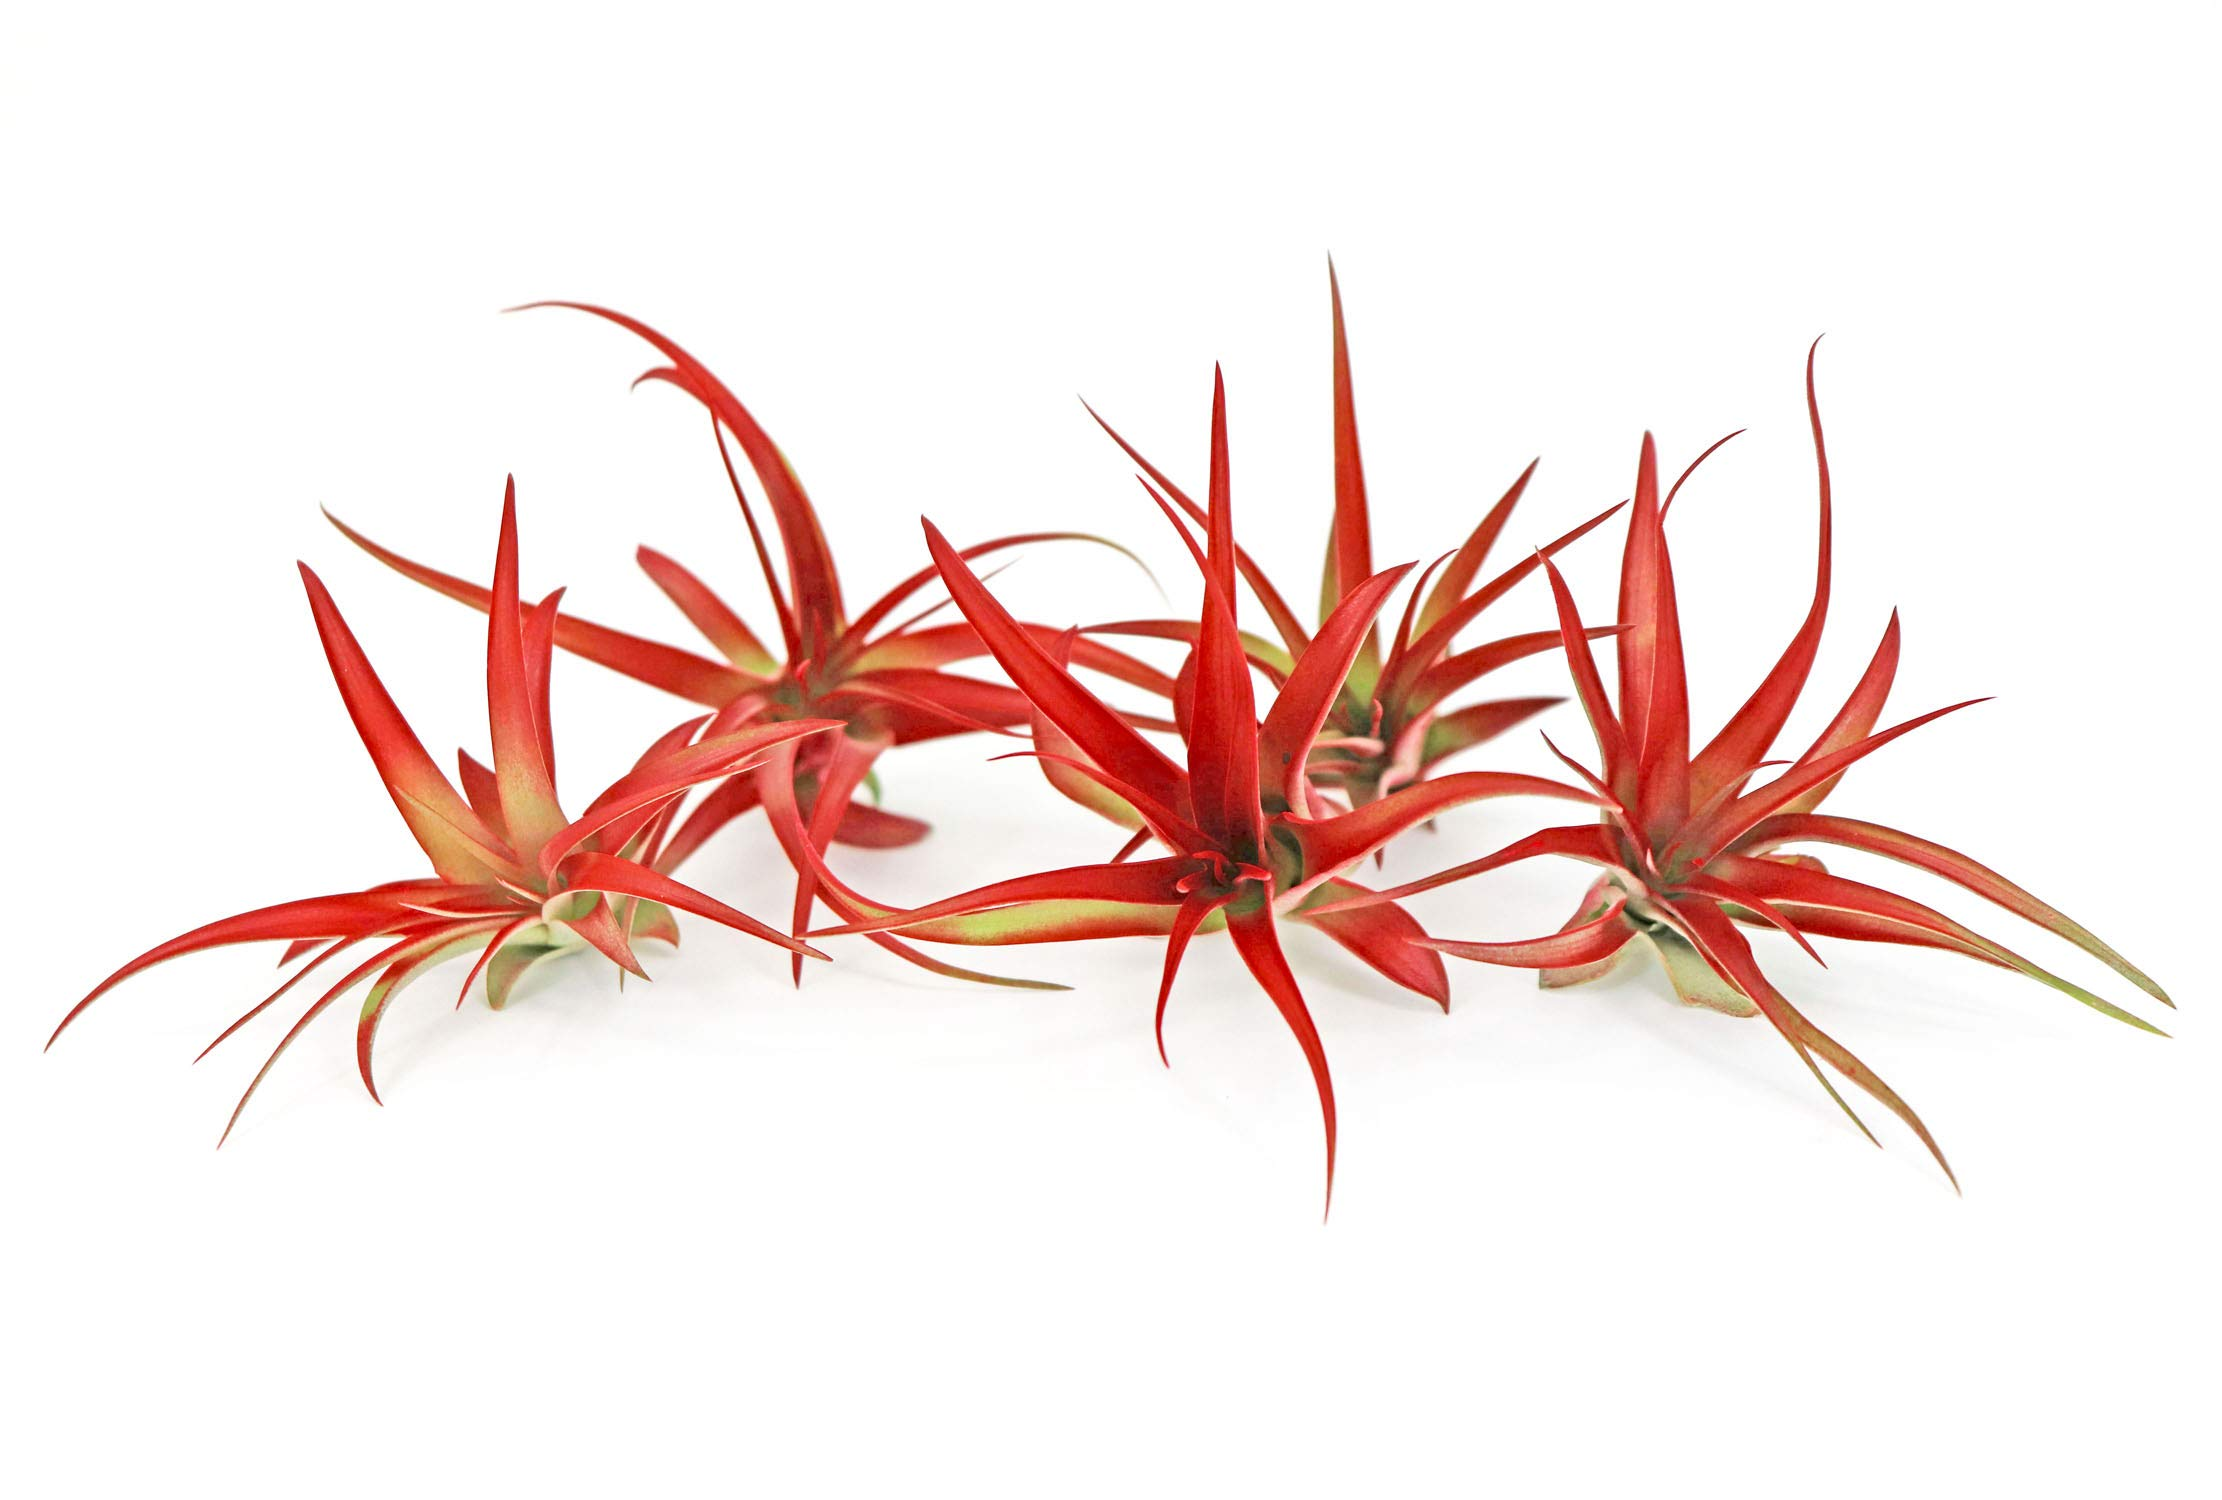 5 Live Air Plants | Bright Red Tillandsia Air Plant Pack | Colorful Indoor Plants | Real Houseplants | Easy Terrarium Decor Kit by Plants for Pets by Plants for Pets (Image #3)